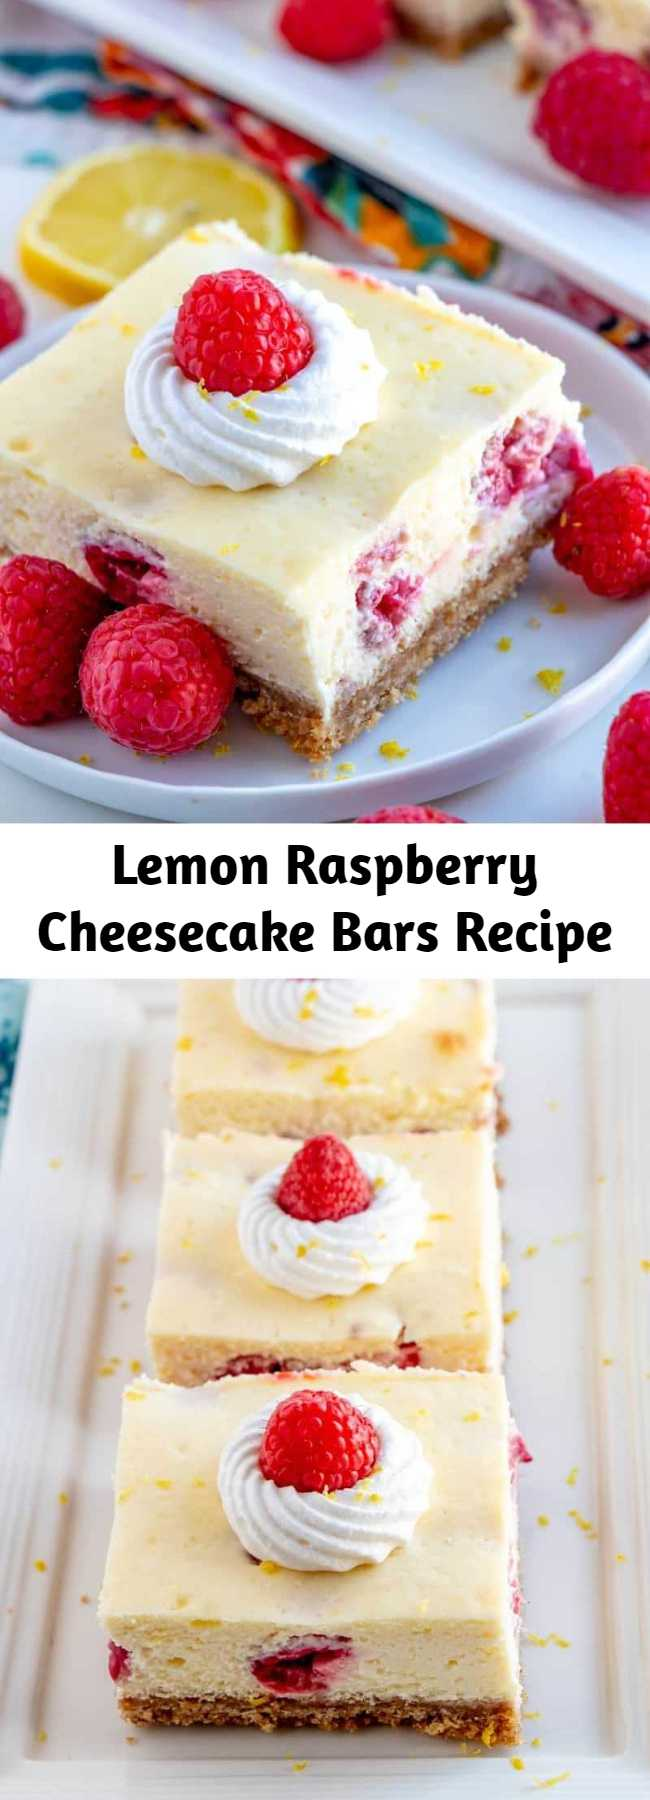 Lemon Raspberry Cheesecake Bars Recipe - Creamy, and delicious these Lemon Raspberry Cheesecake Bars are packed full of lemon, fresh raspberries and topped with a dollop of whipped cream, the perfect dessert for Spring and Summer! #cheesecake #bars #lemon #raspberry #dessert #sweets